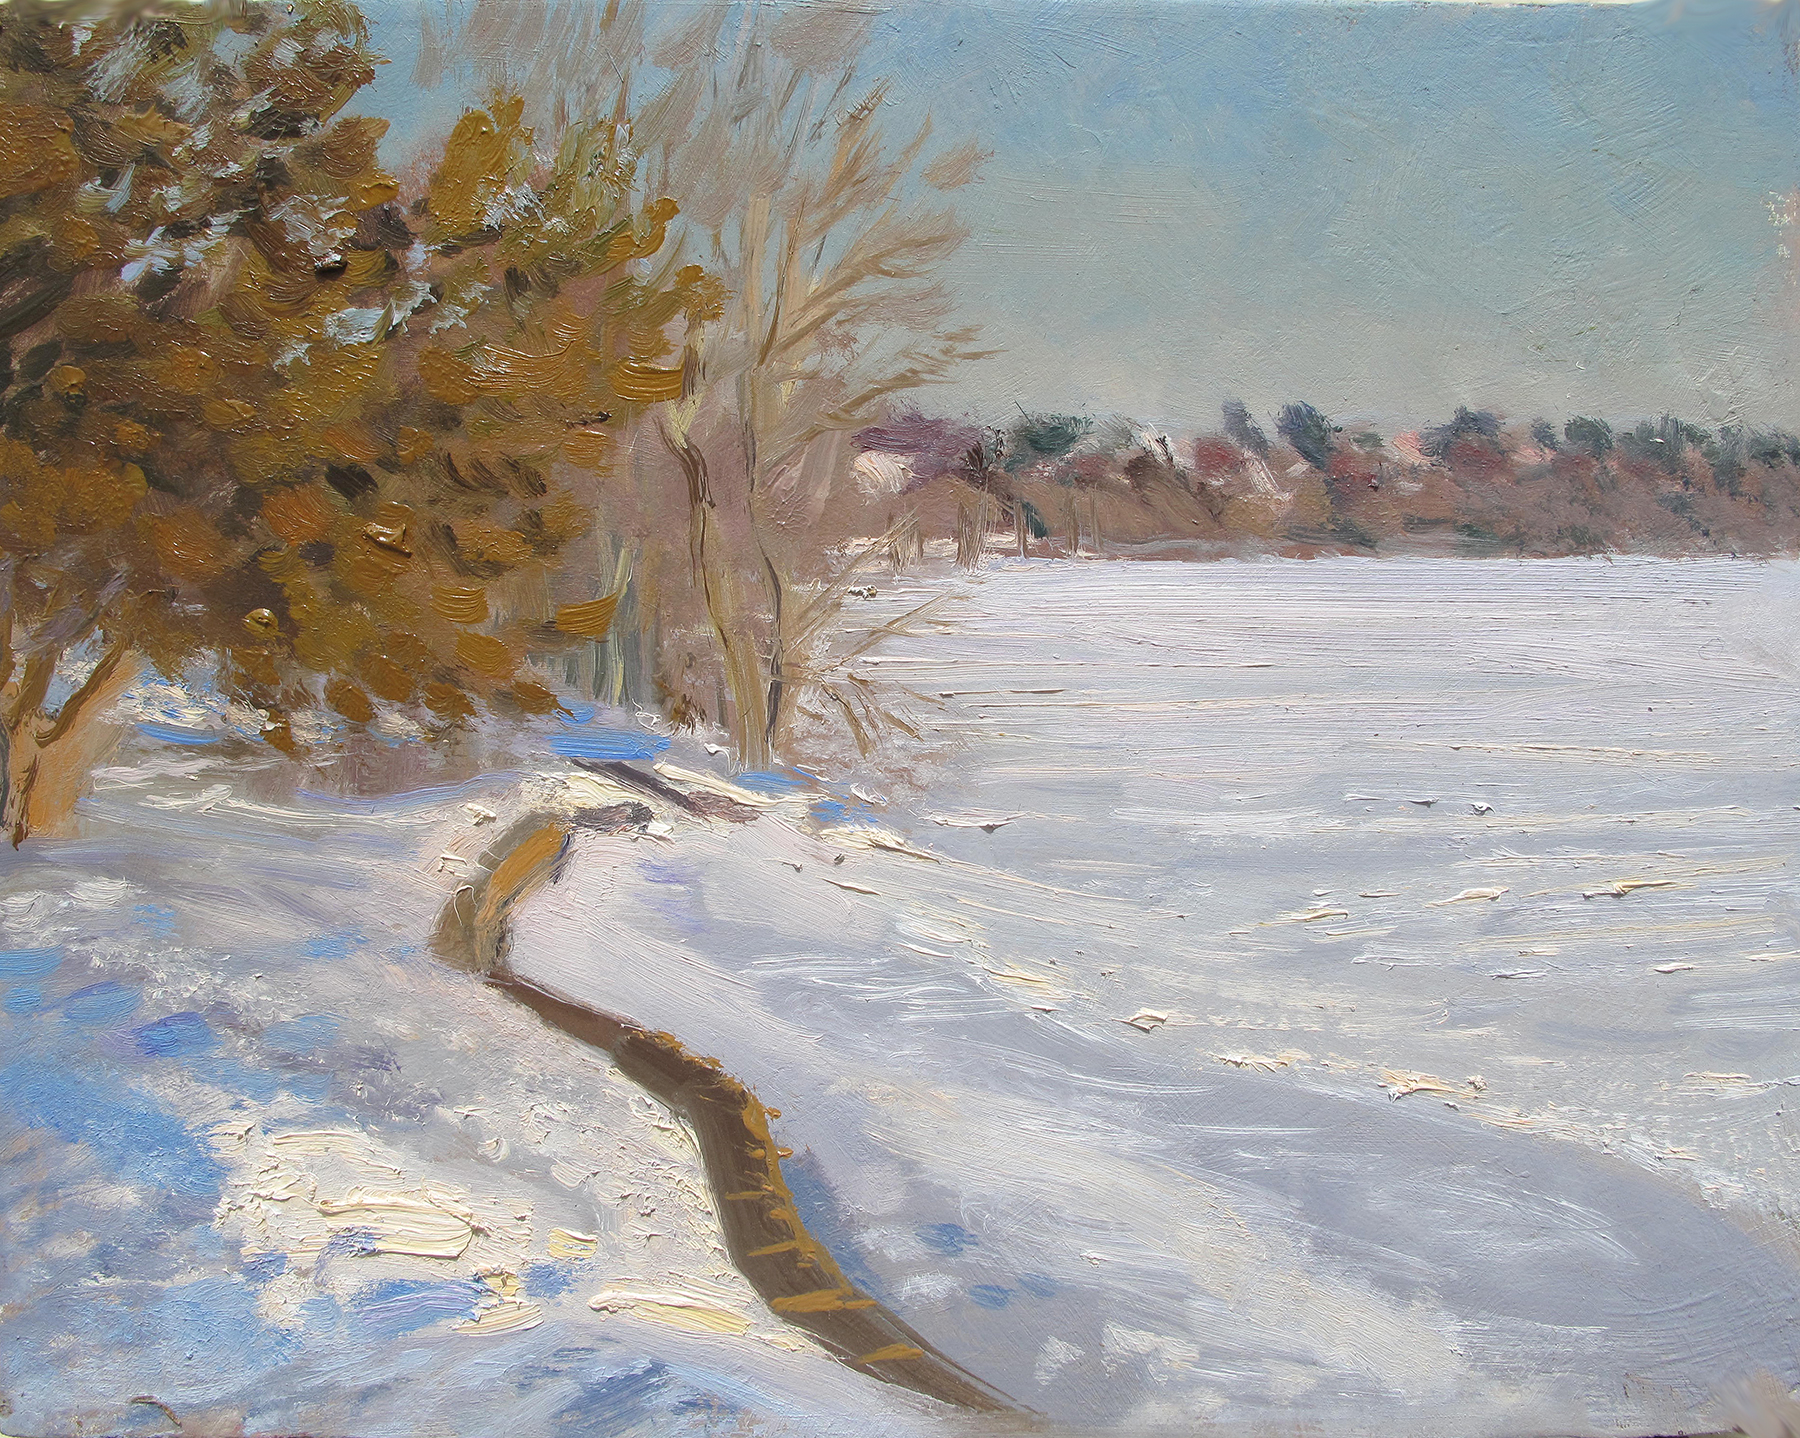 Winter on Lake Harriet   8 x 10 oil on panel  This direct late afternoon sun on the trees is an appealing light effect for me. Not many shadows, just pure light. But mostly, the shape of the wall caught my eye.